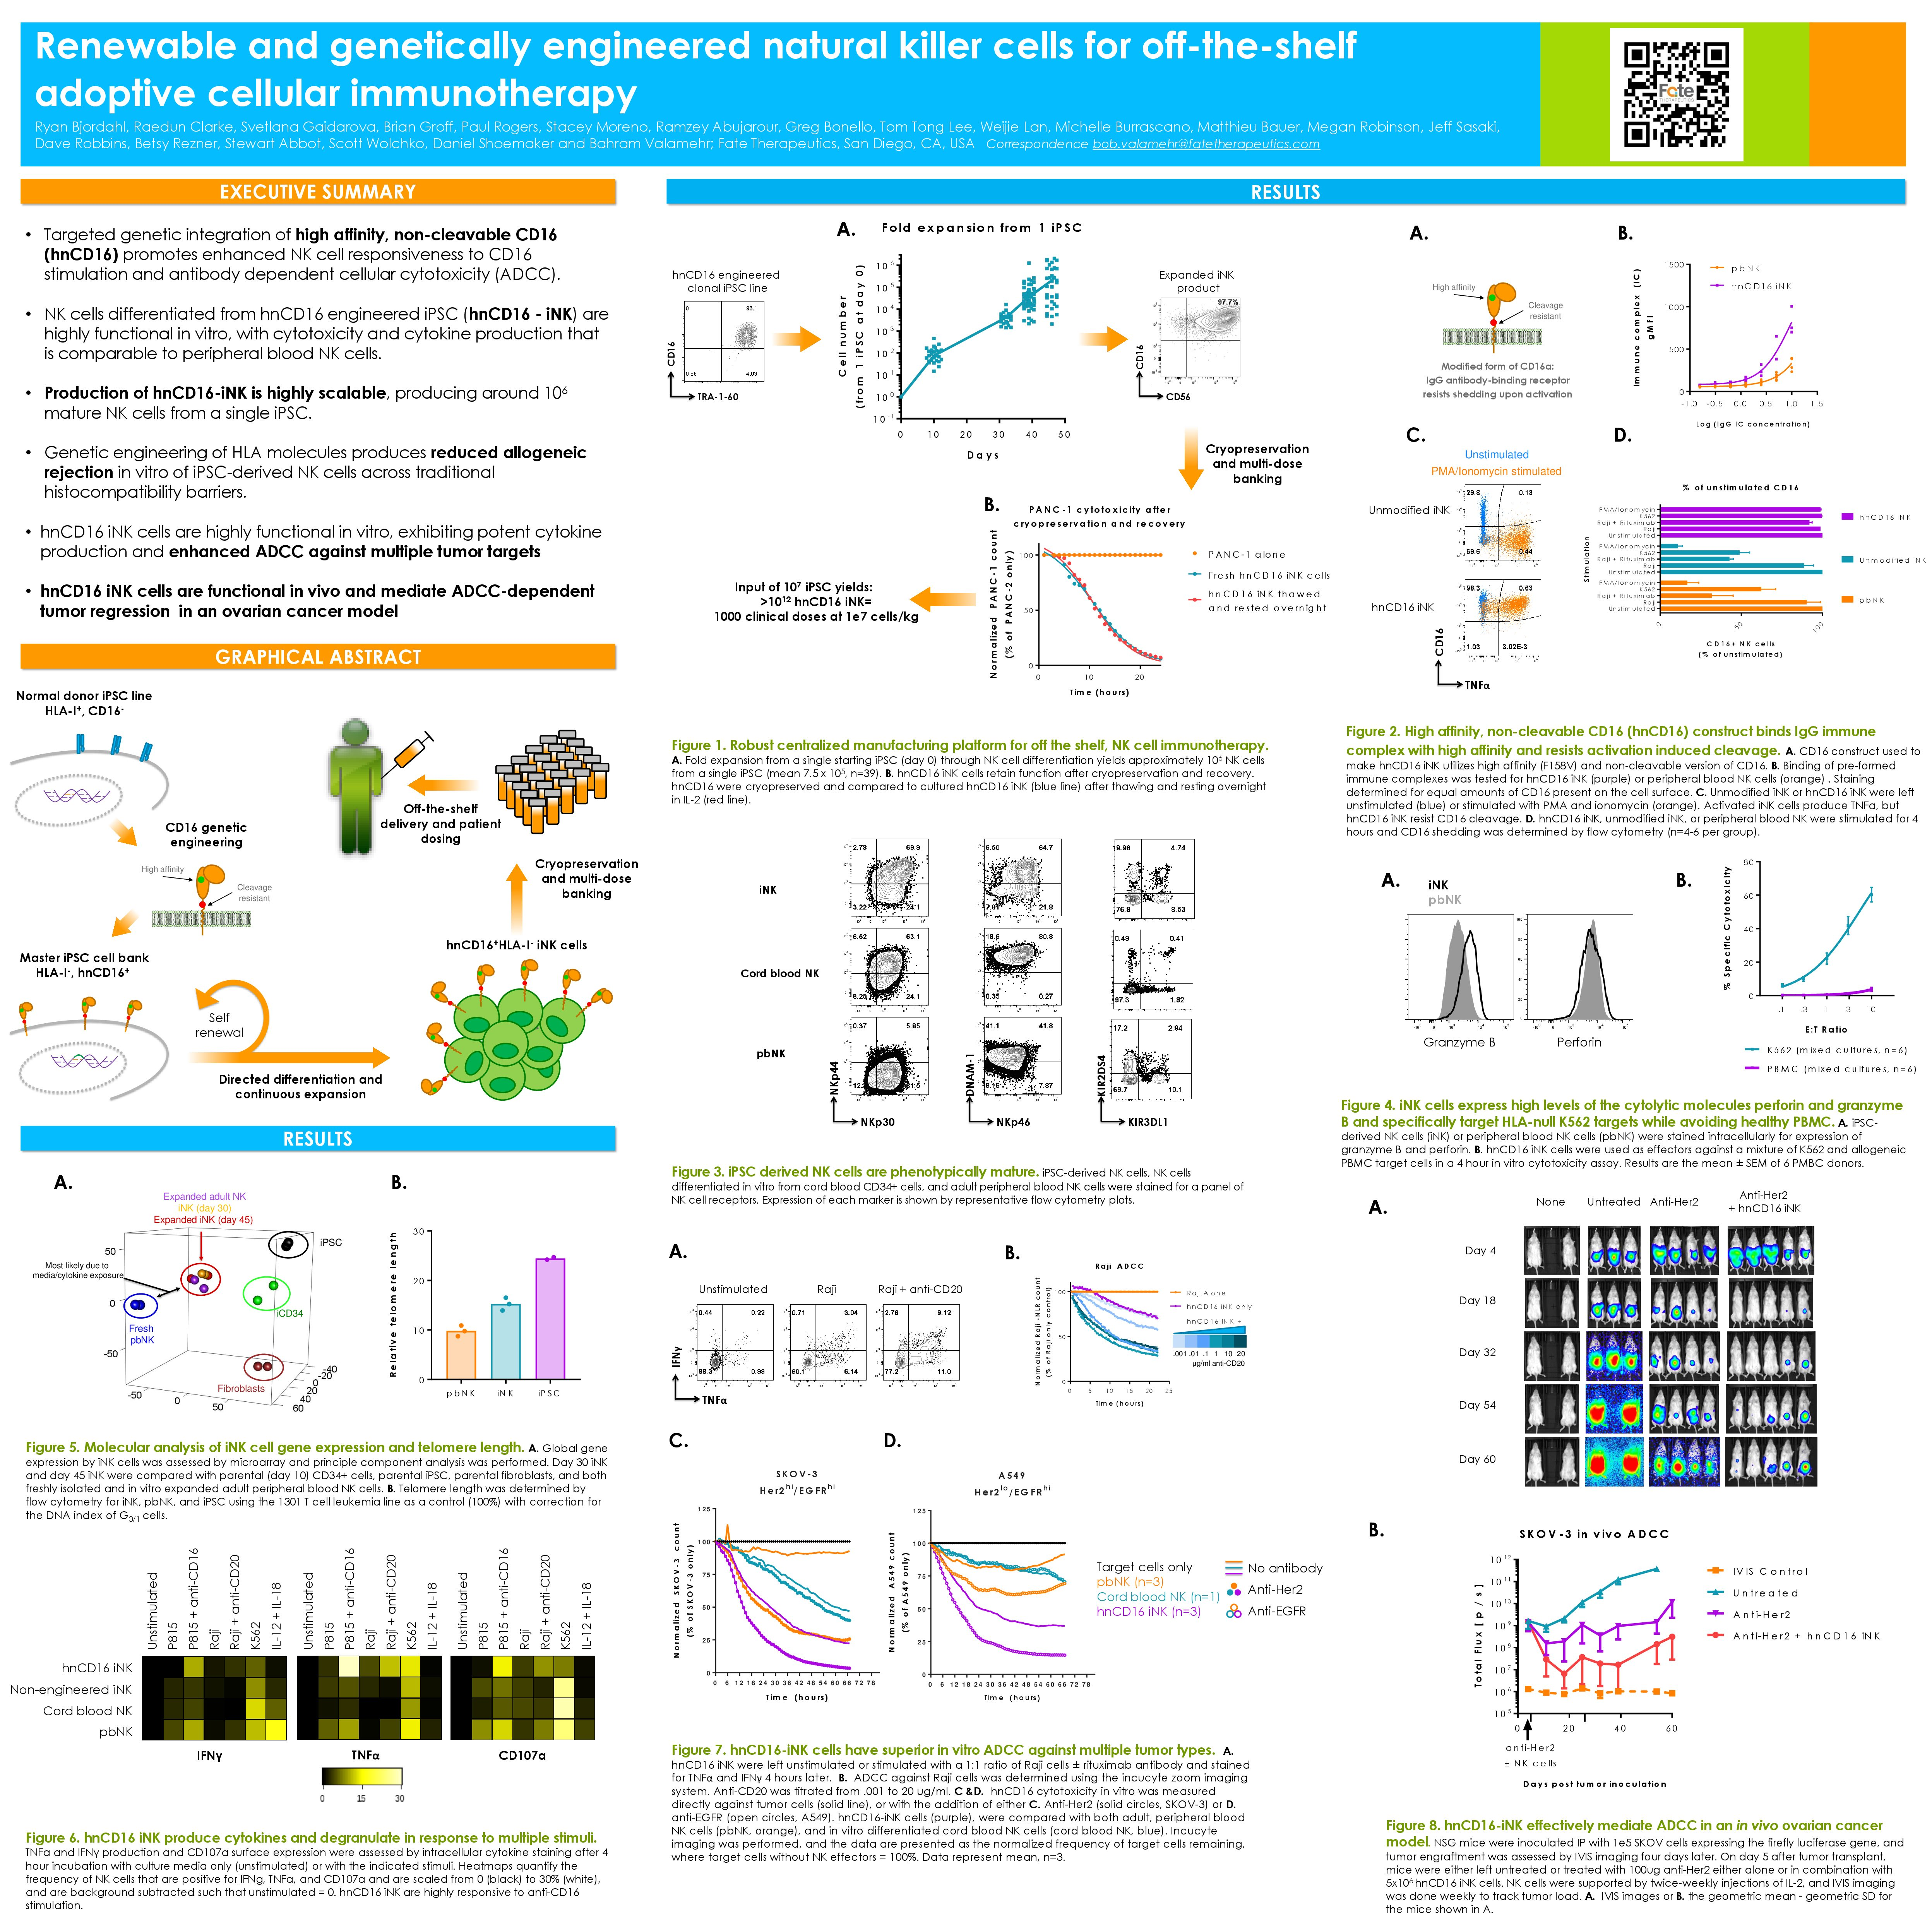 03-Jan-2019 15 30 2.5M 2017-ISSCR-Poster-V8..  03-Jan-2019 15 30 229K 2017-ISSCR-Poster-V8..   03-Jan-2019 15 30 9.3K 2017-ISSCR-Poster-V8. 60aa658a9a